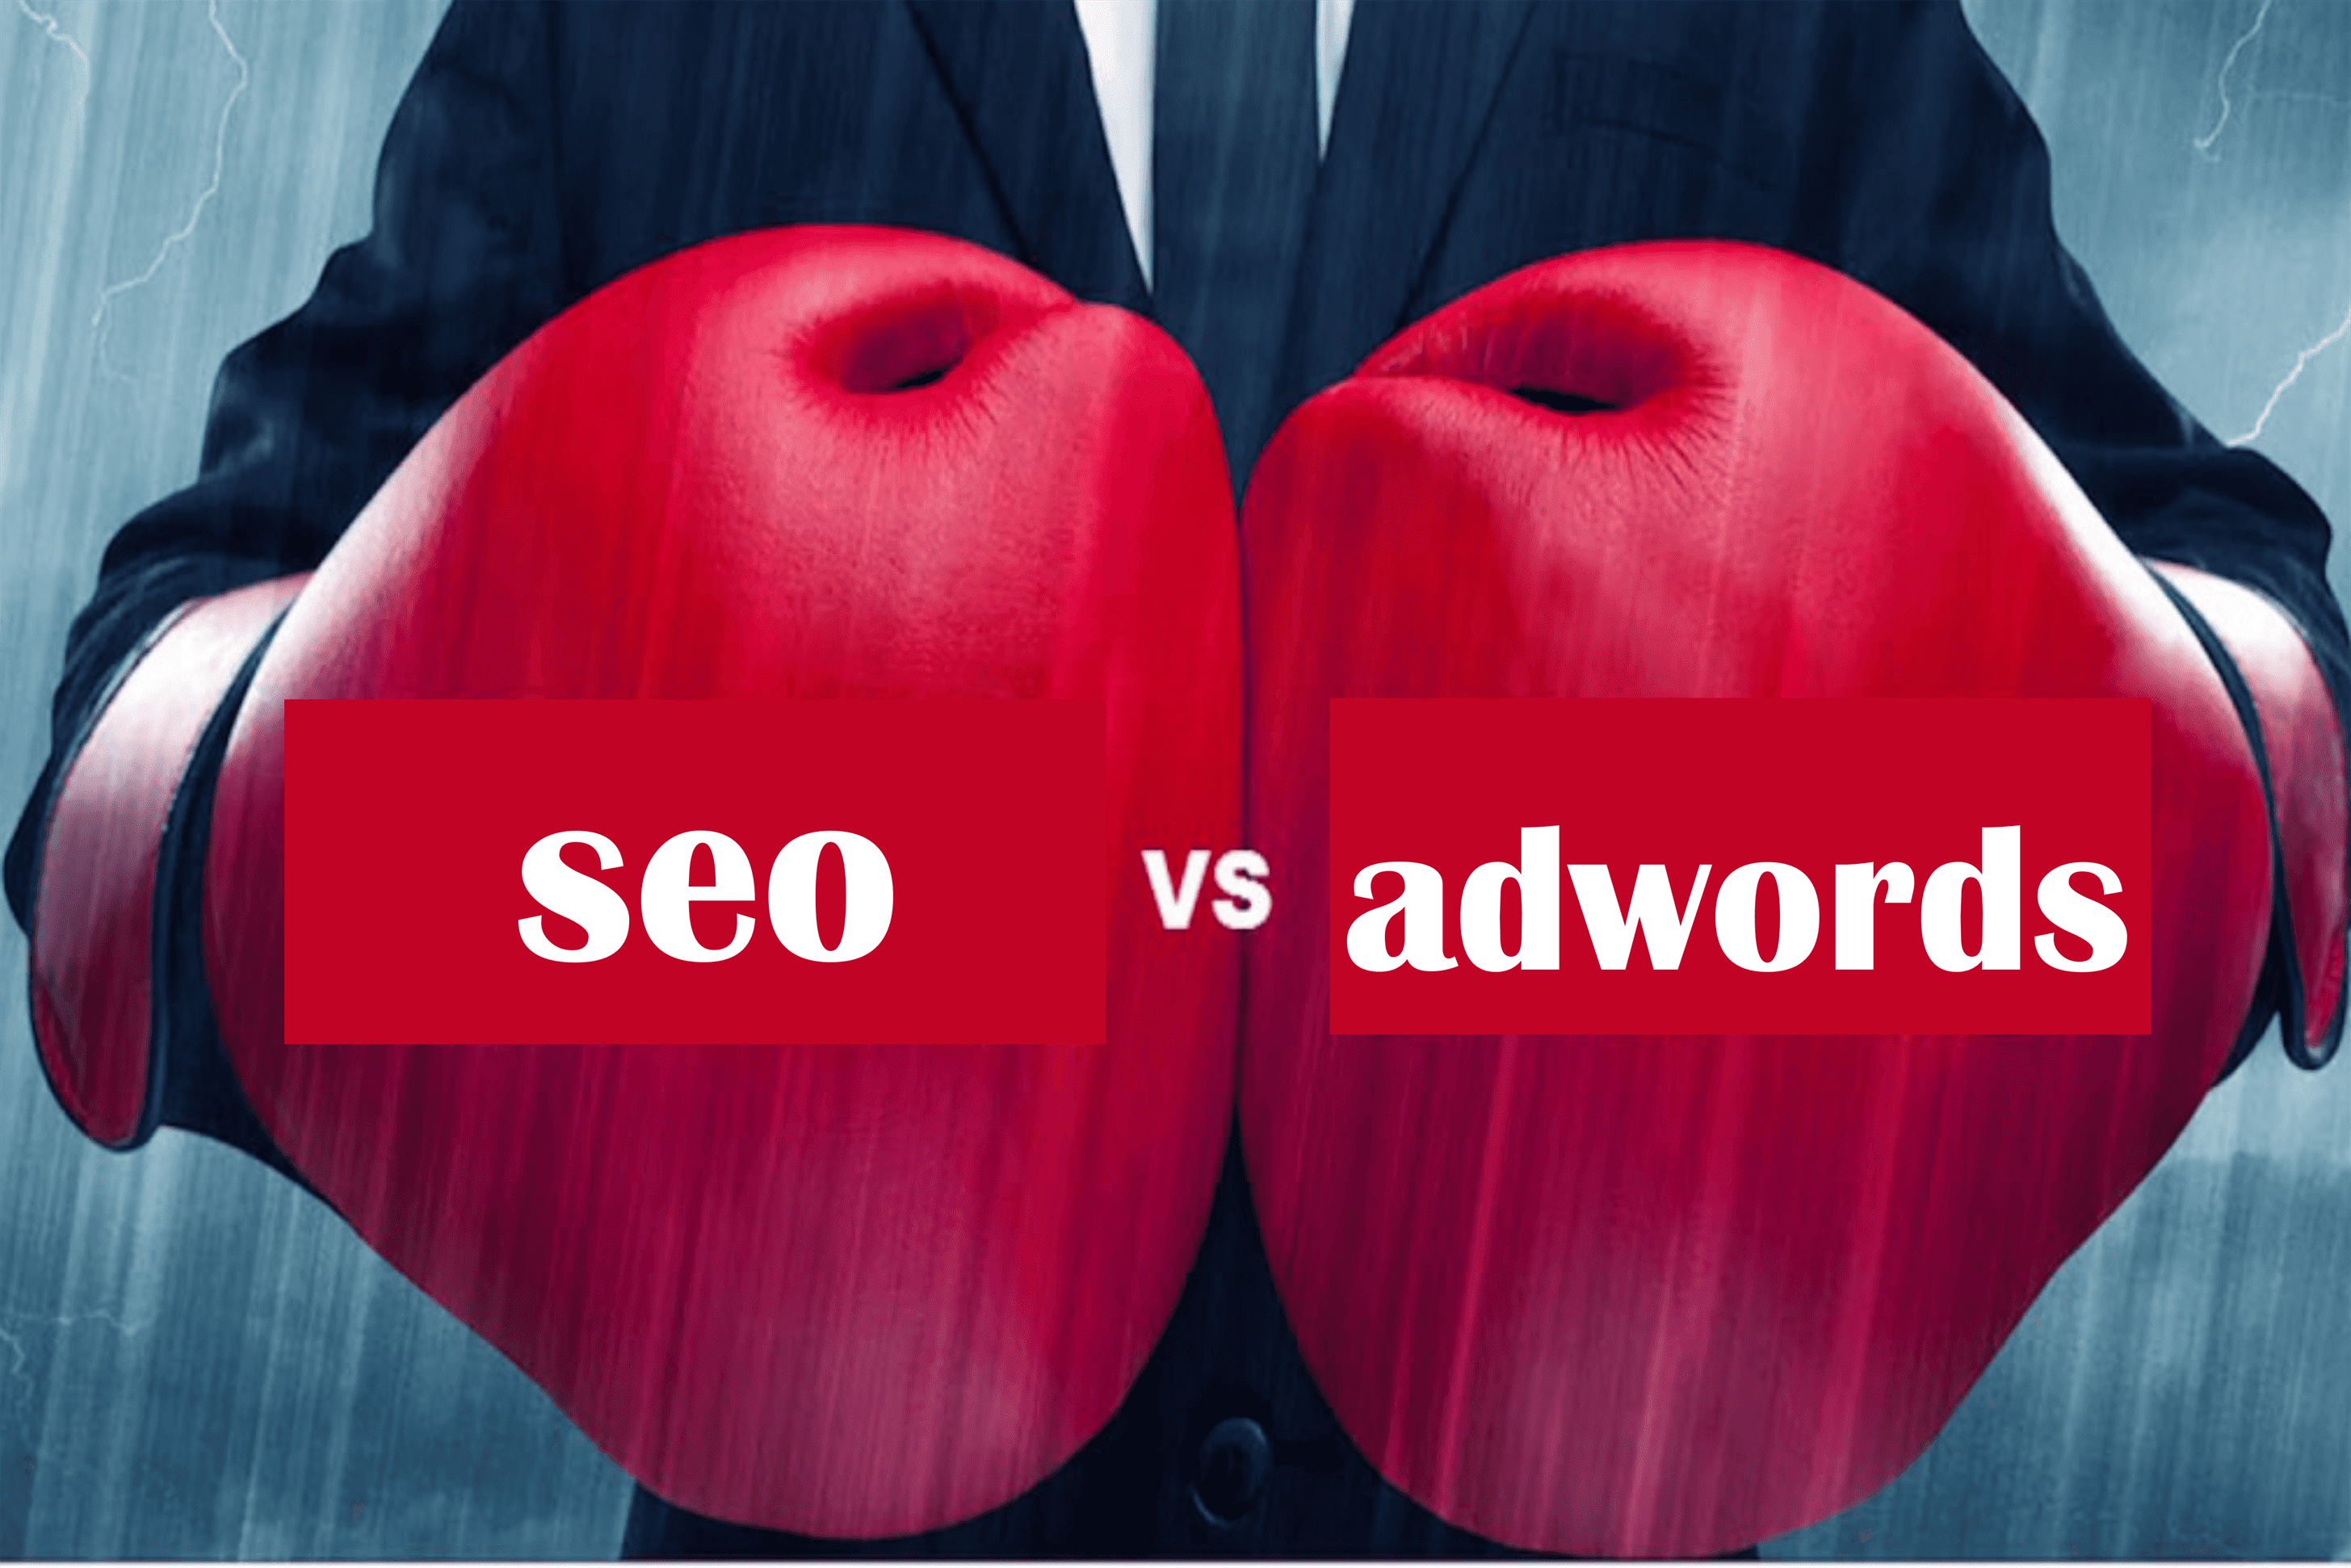 Online promotion - Adwords or SEO?